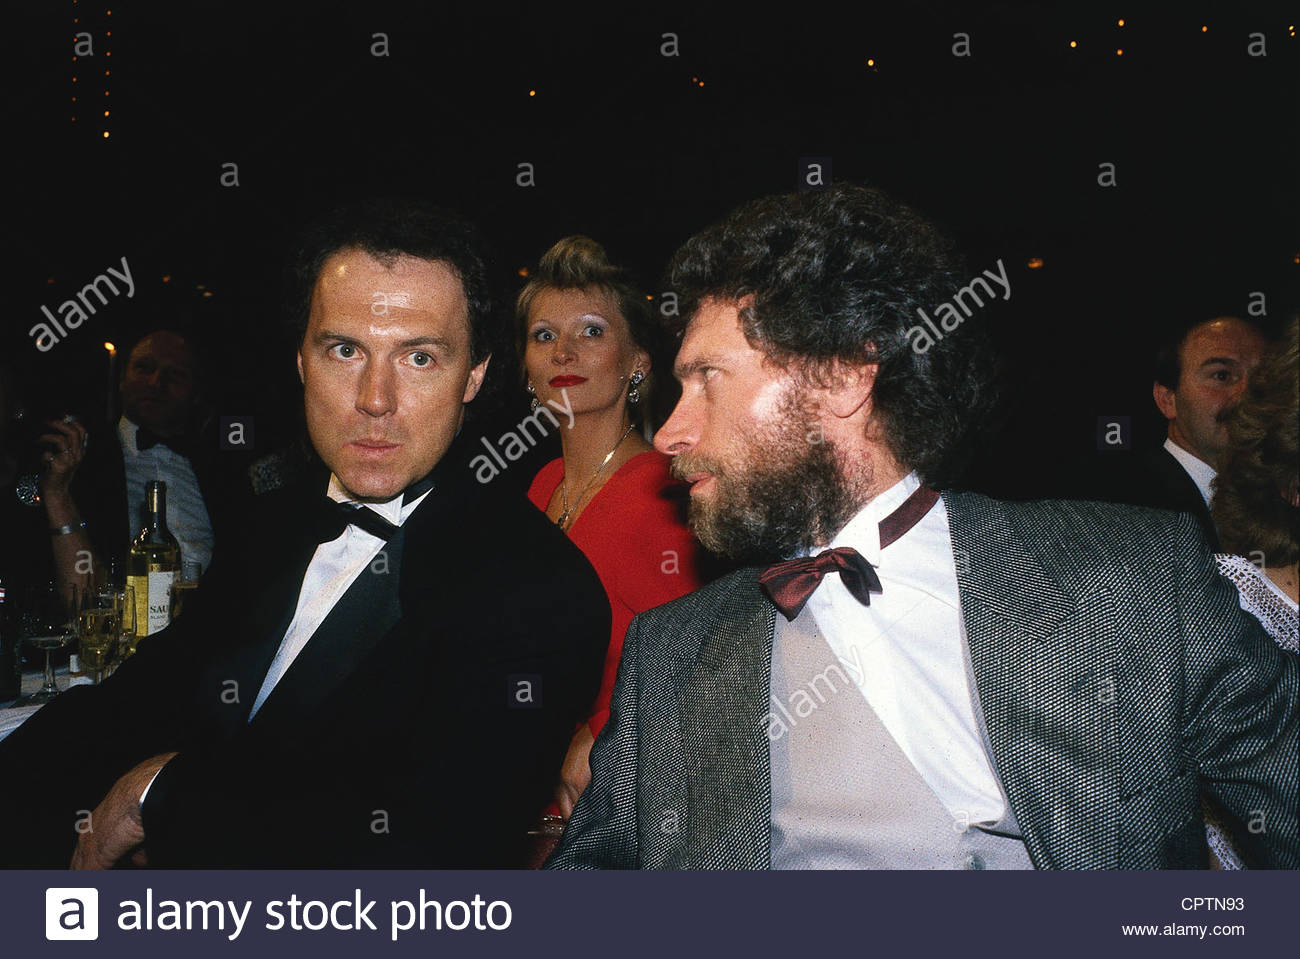 Beckenbauer, Franz, * 11.9.1945, German football player, half length, with Paul Breitner, 1980s, soccer, - Stock Image